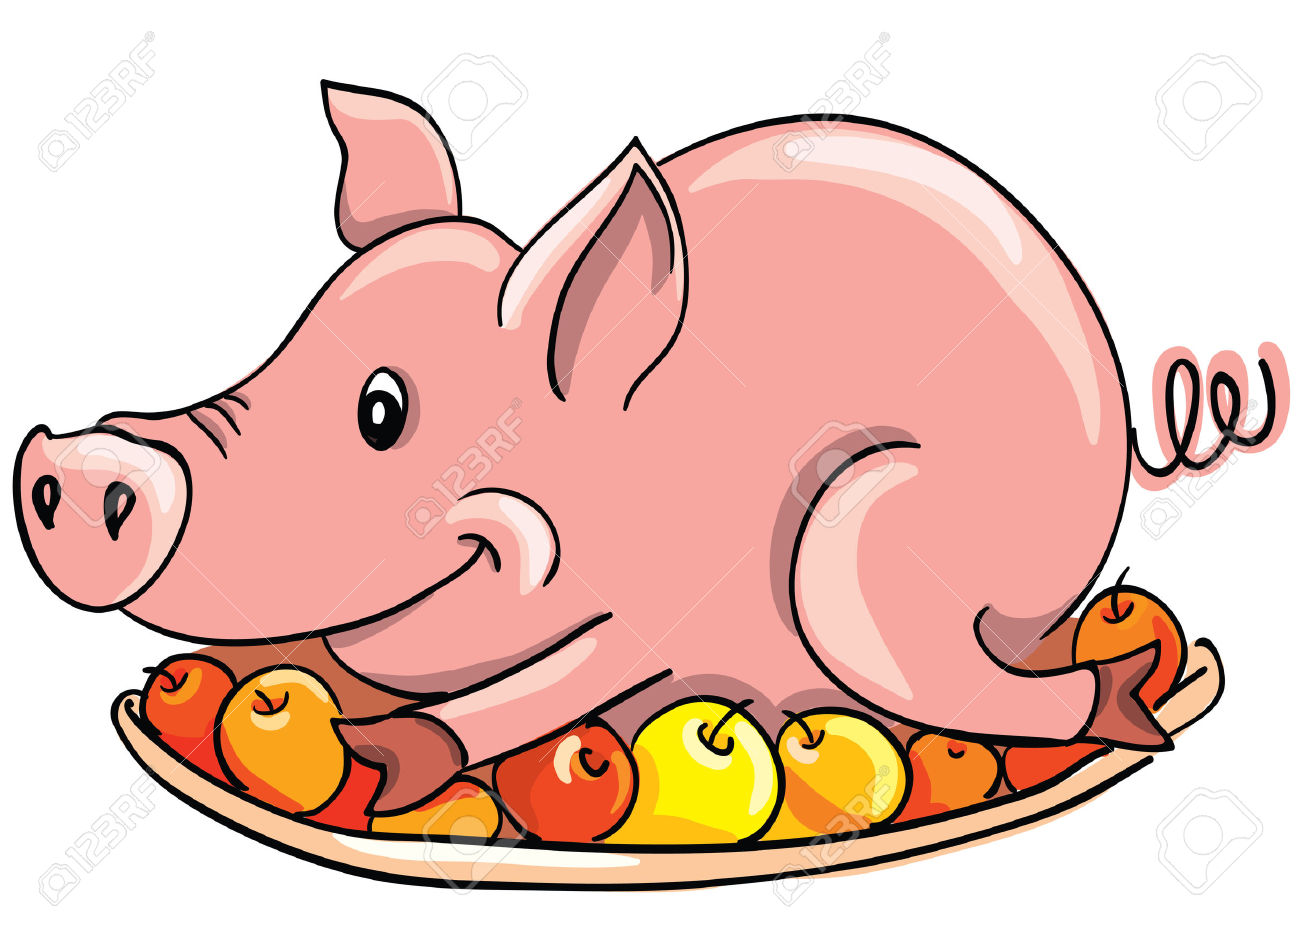 Cartoon Fried Pig On A Plate Royalty Free Cliparts, Vectors, And.